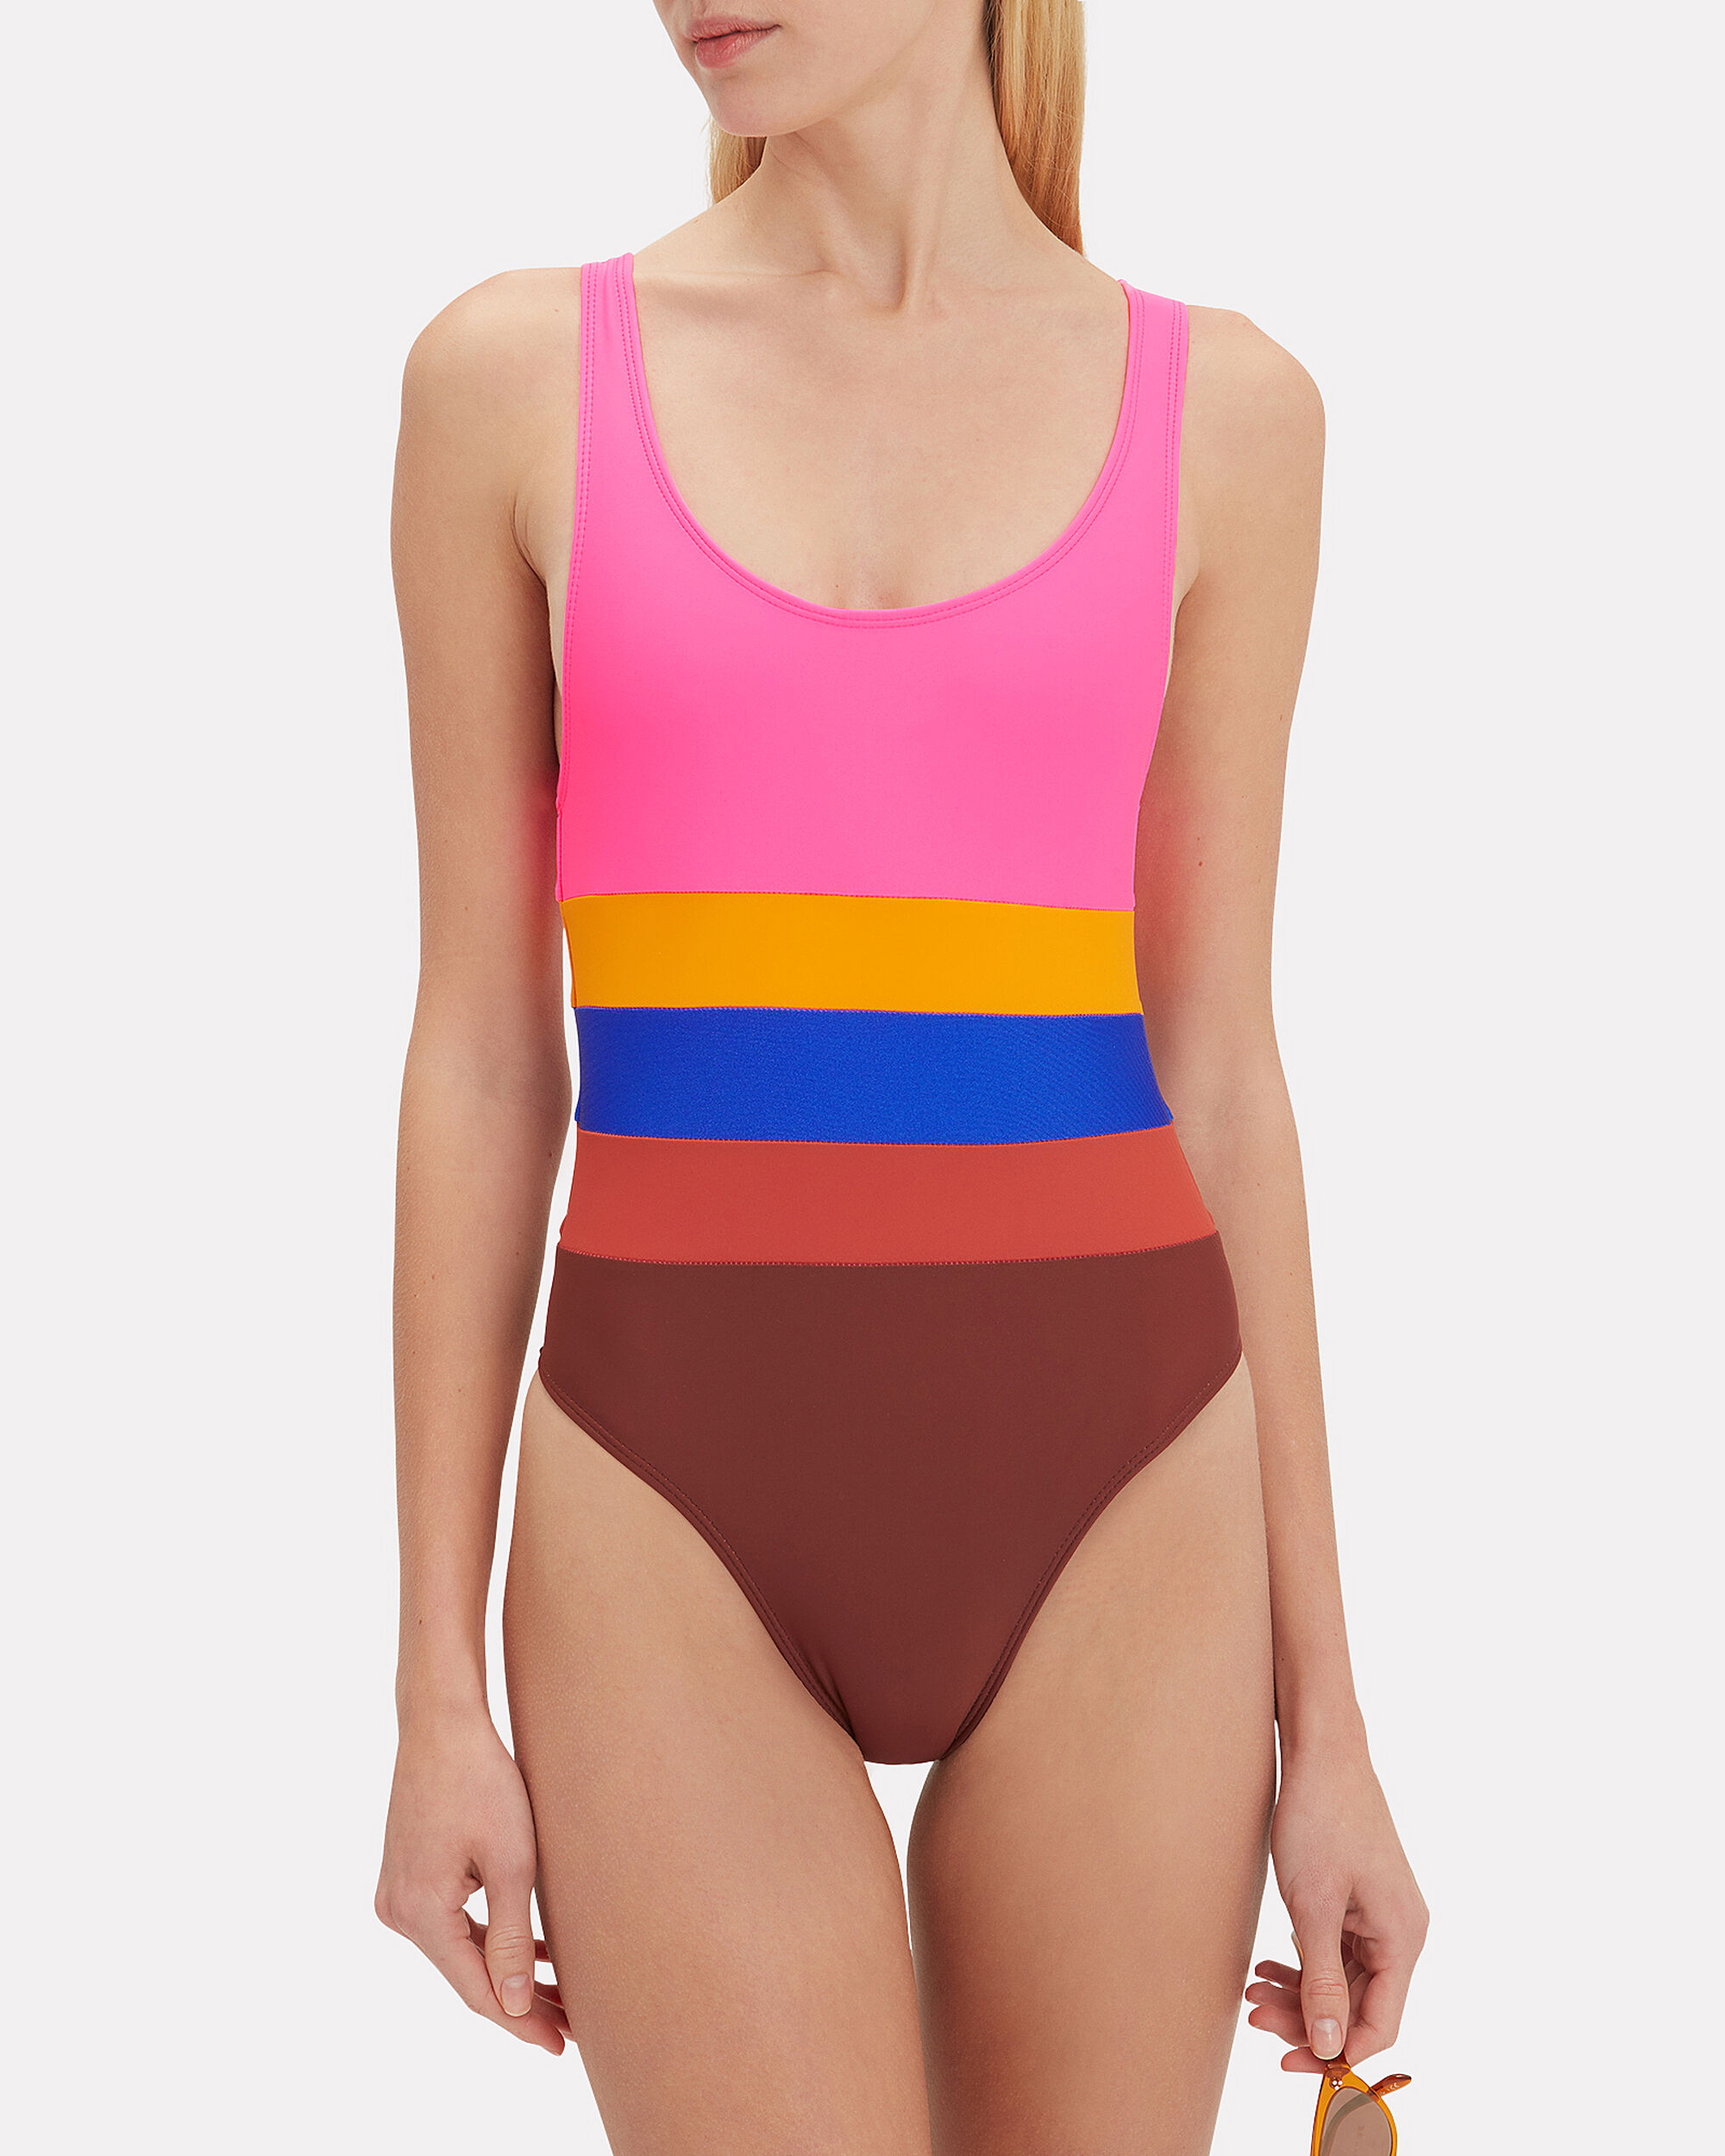 Randell Striped One Piece Swimsuit, PINK/ORANGE/BLUE, hi-res